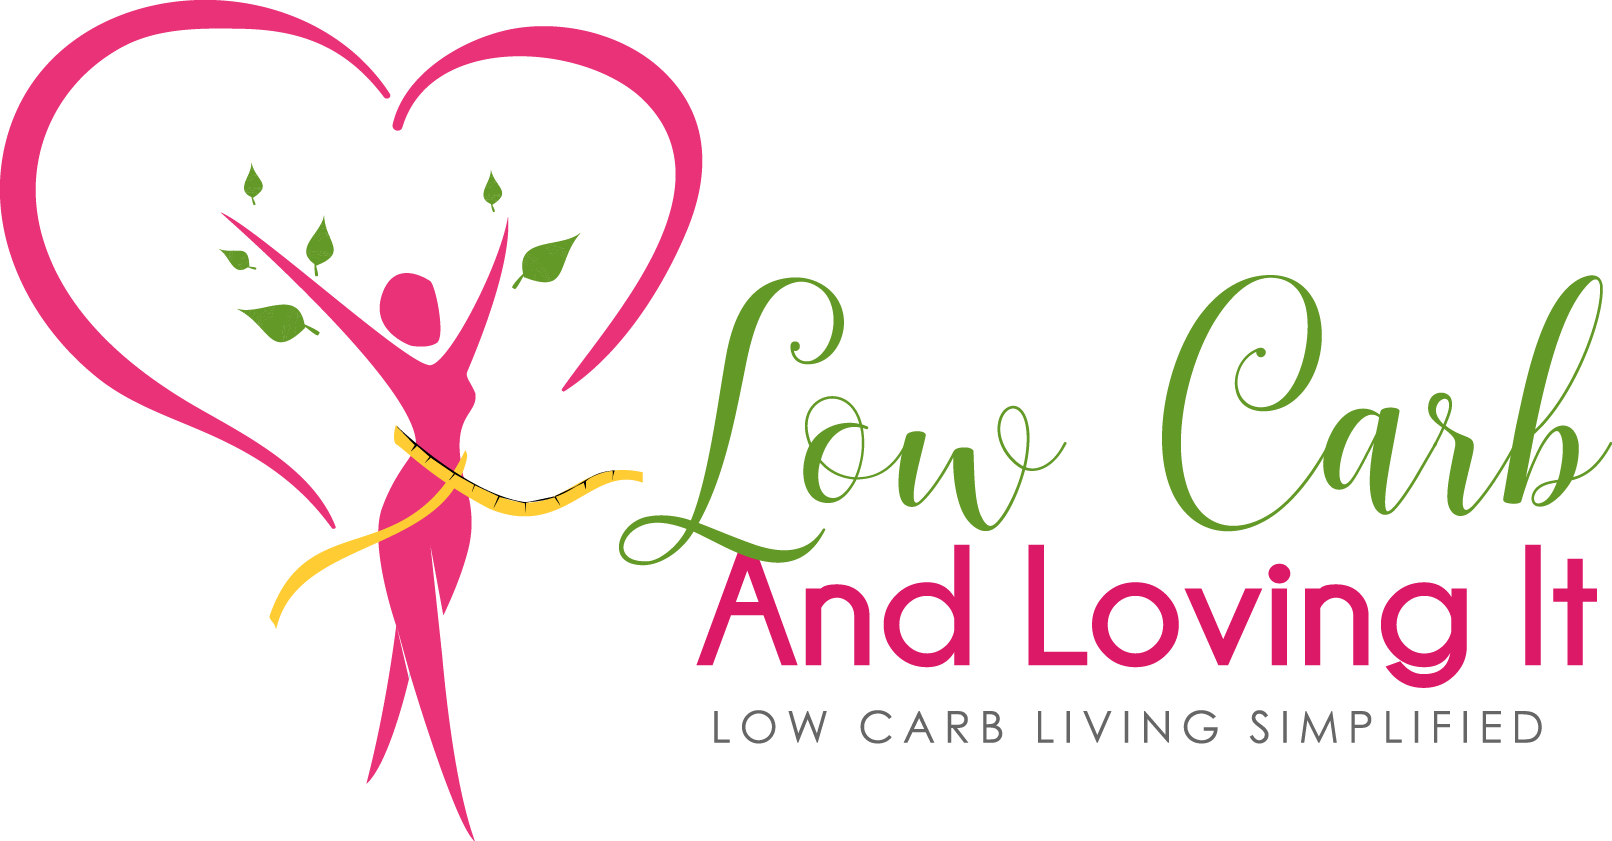 Low Carb and LOVING It.com